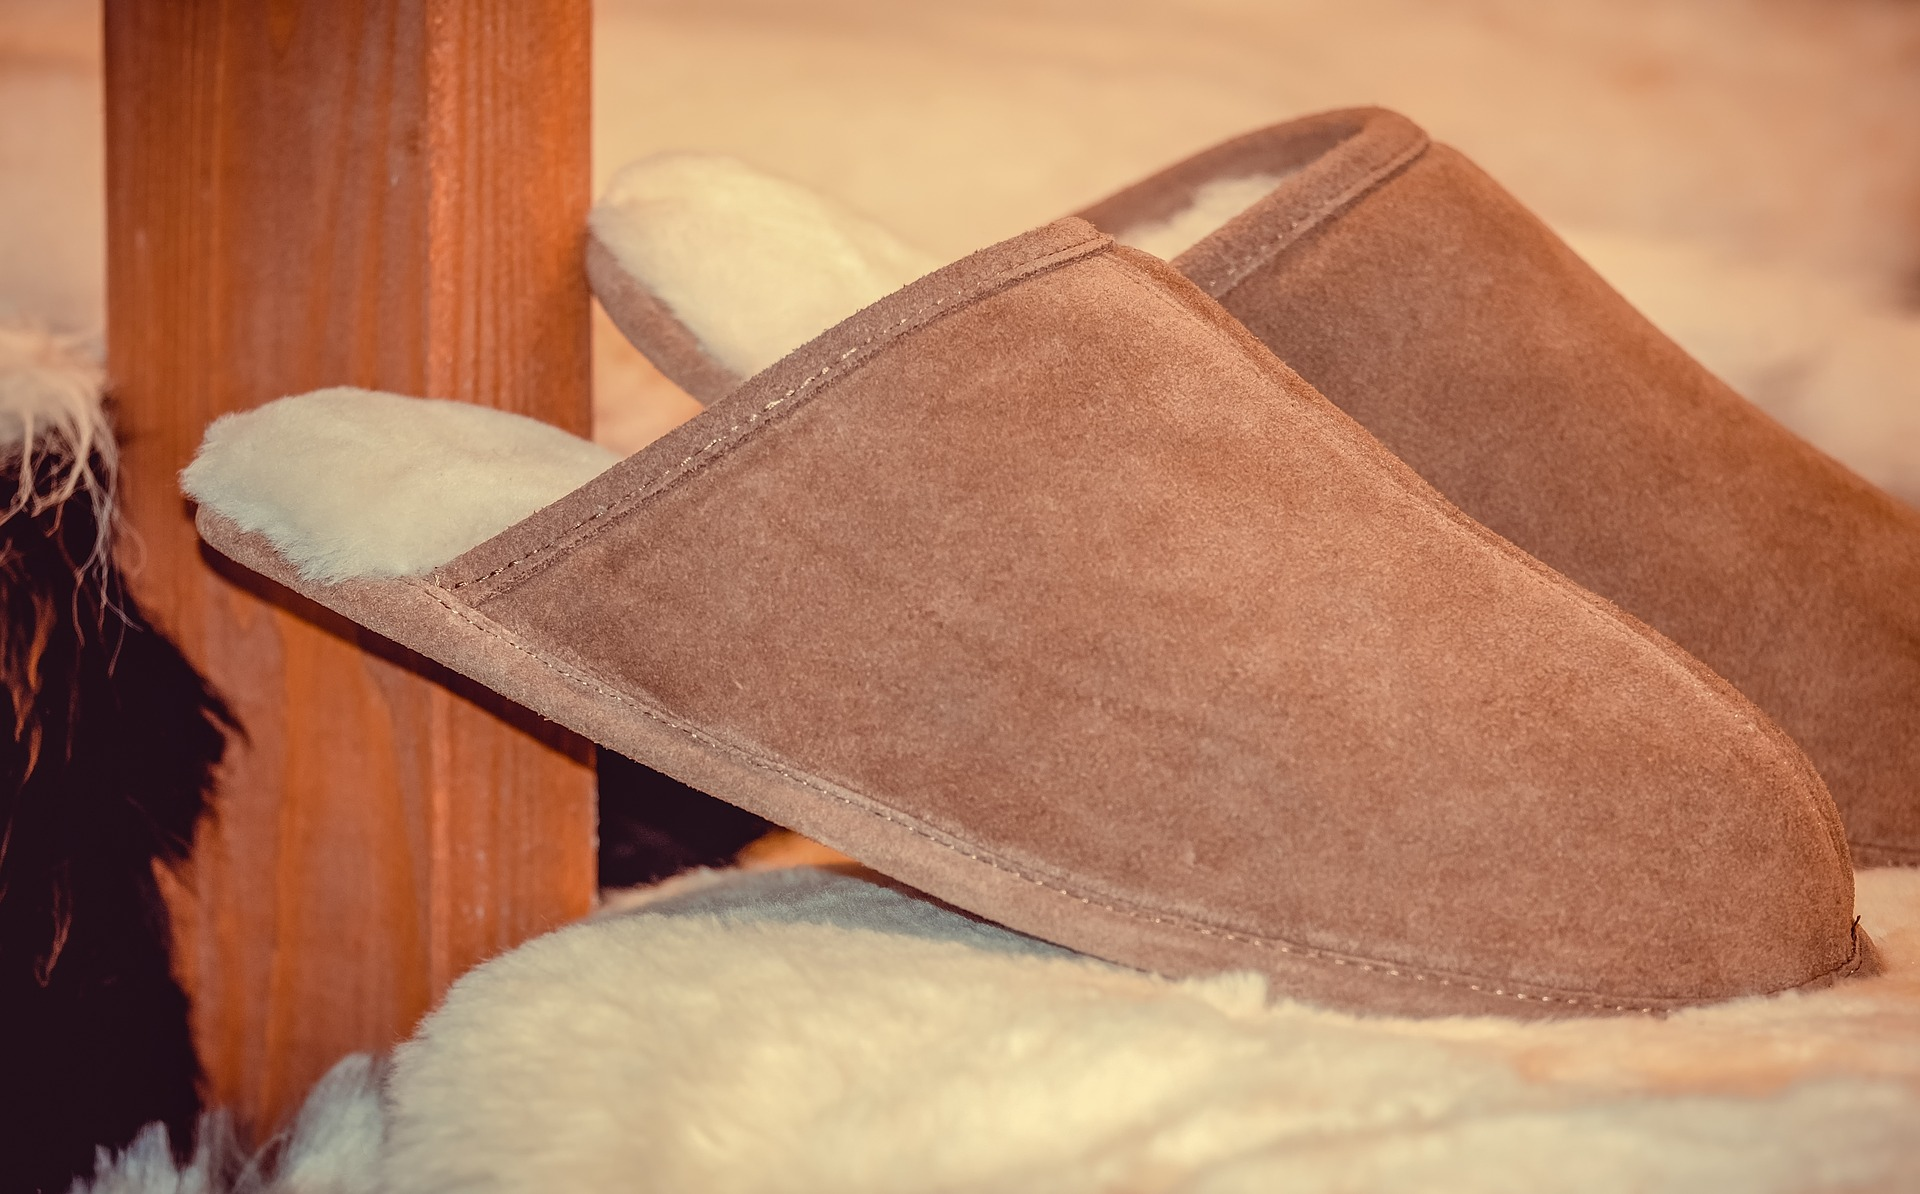 slippers-3836383_1920